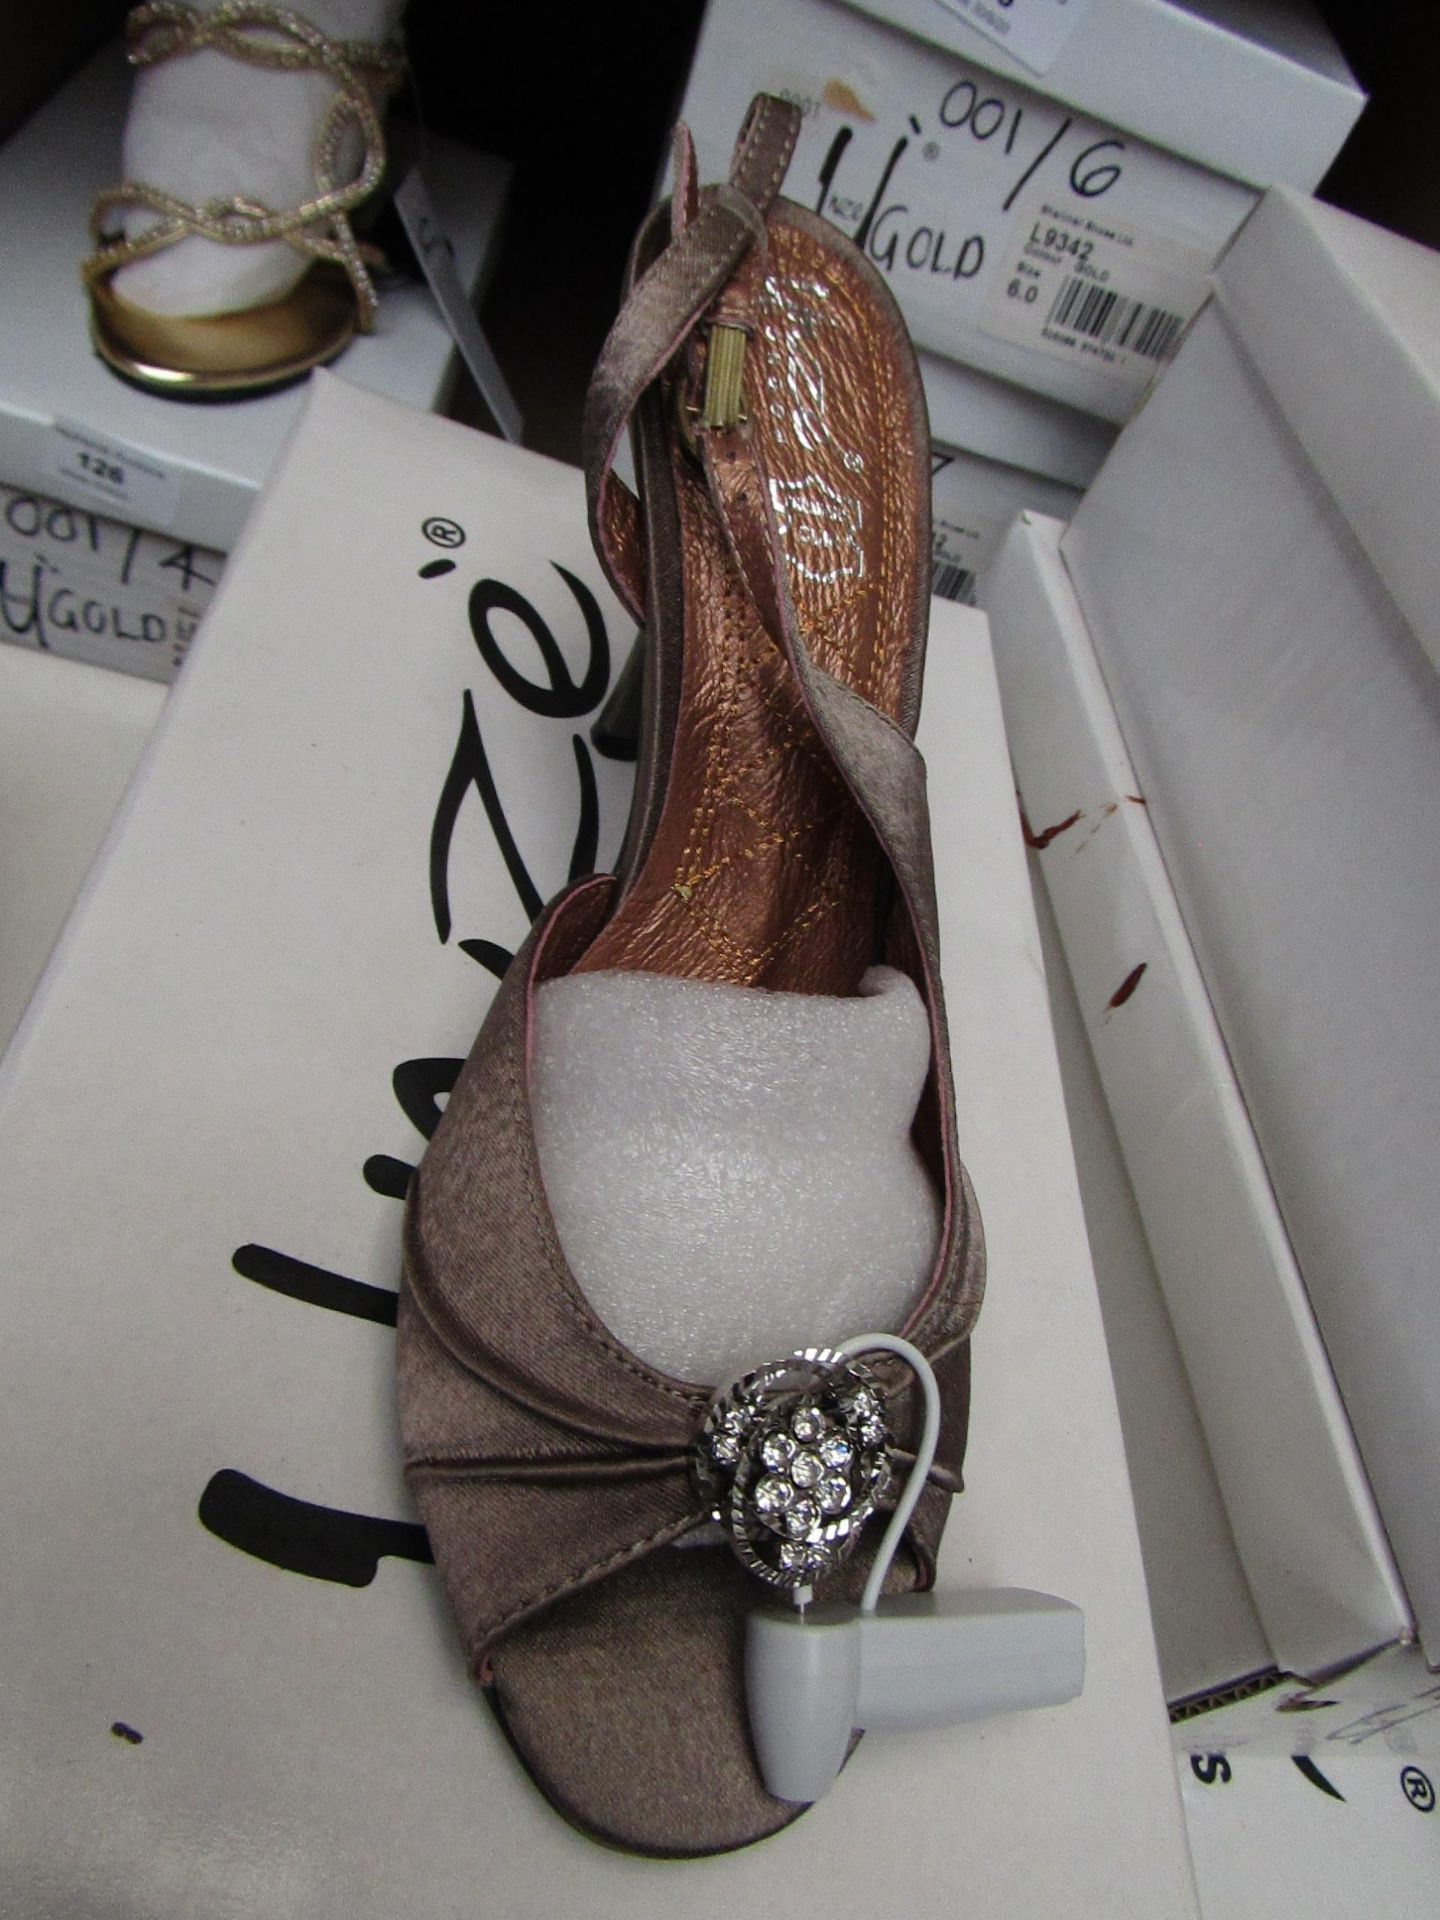 Unze by Shalamar Shoes Ladies Coffee & Embellished Shoes size 3 new & boxed see image for design